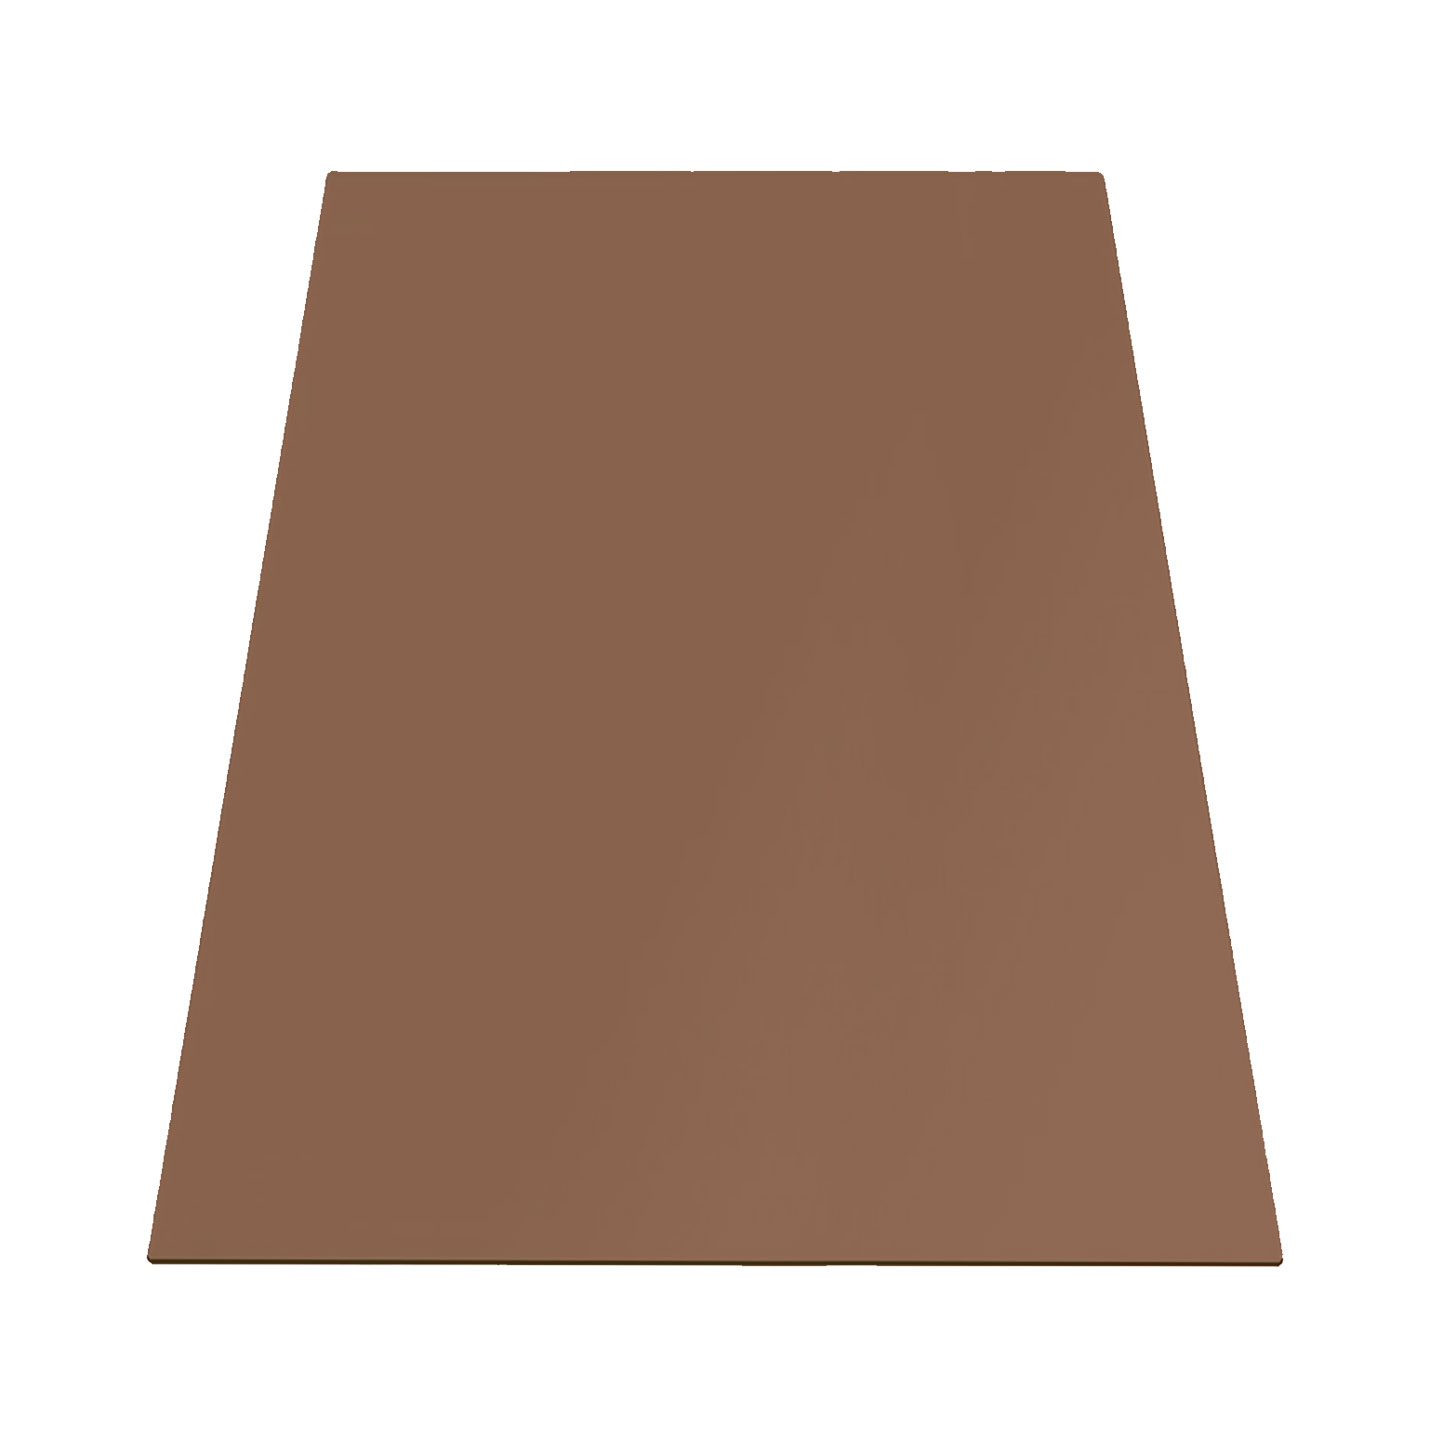 Buy 12 mm Rectangle Table Top Tempered Bronze Tinted Glass - Flat Polished Edges & Eased Corners